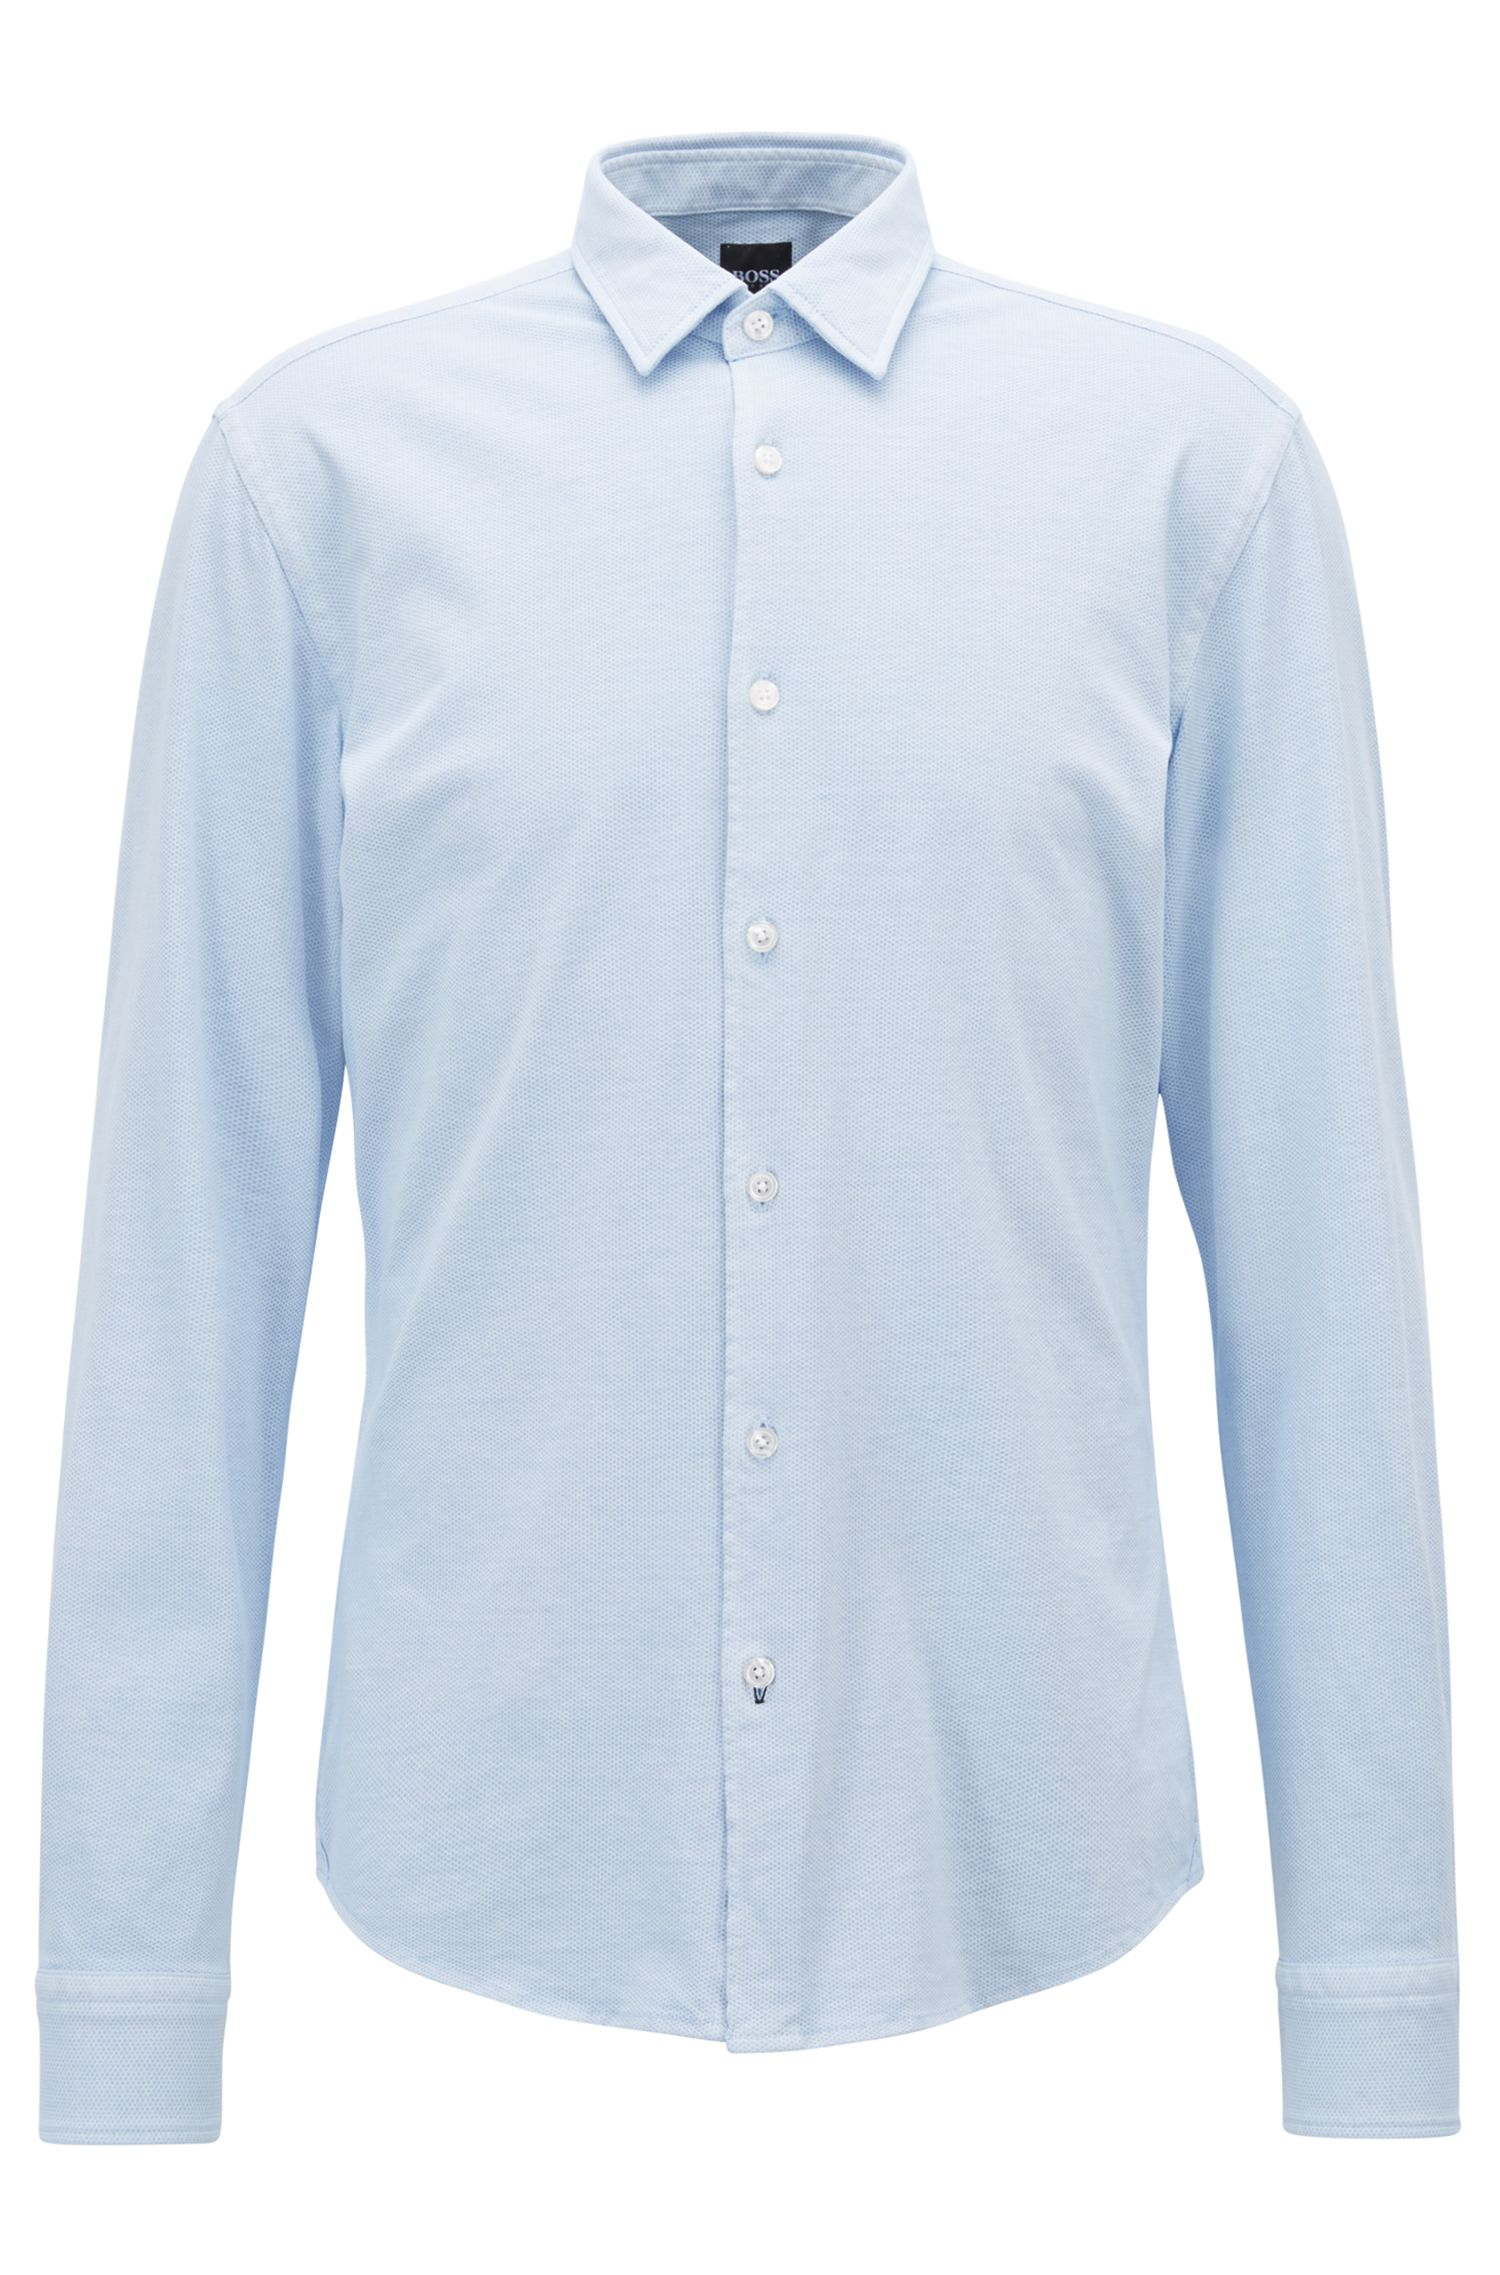 Slim-fit shirt in printed cotton jersey